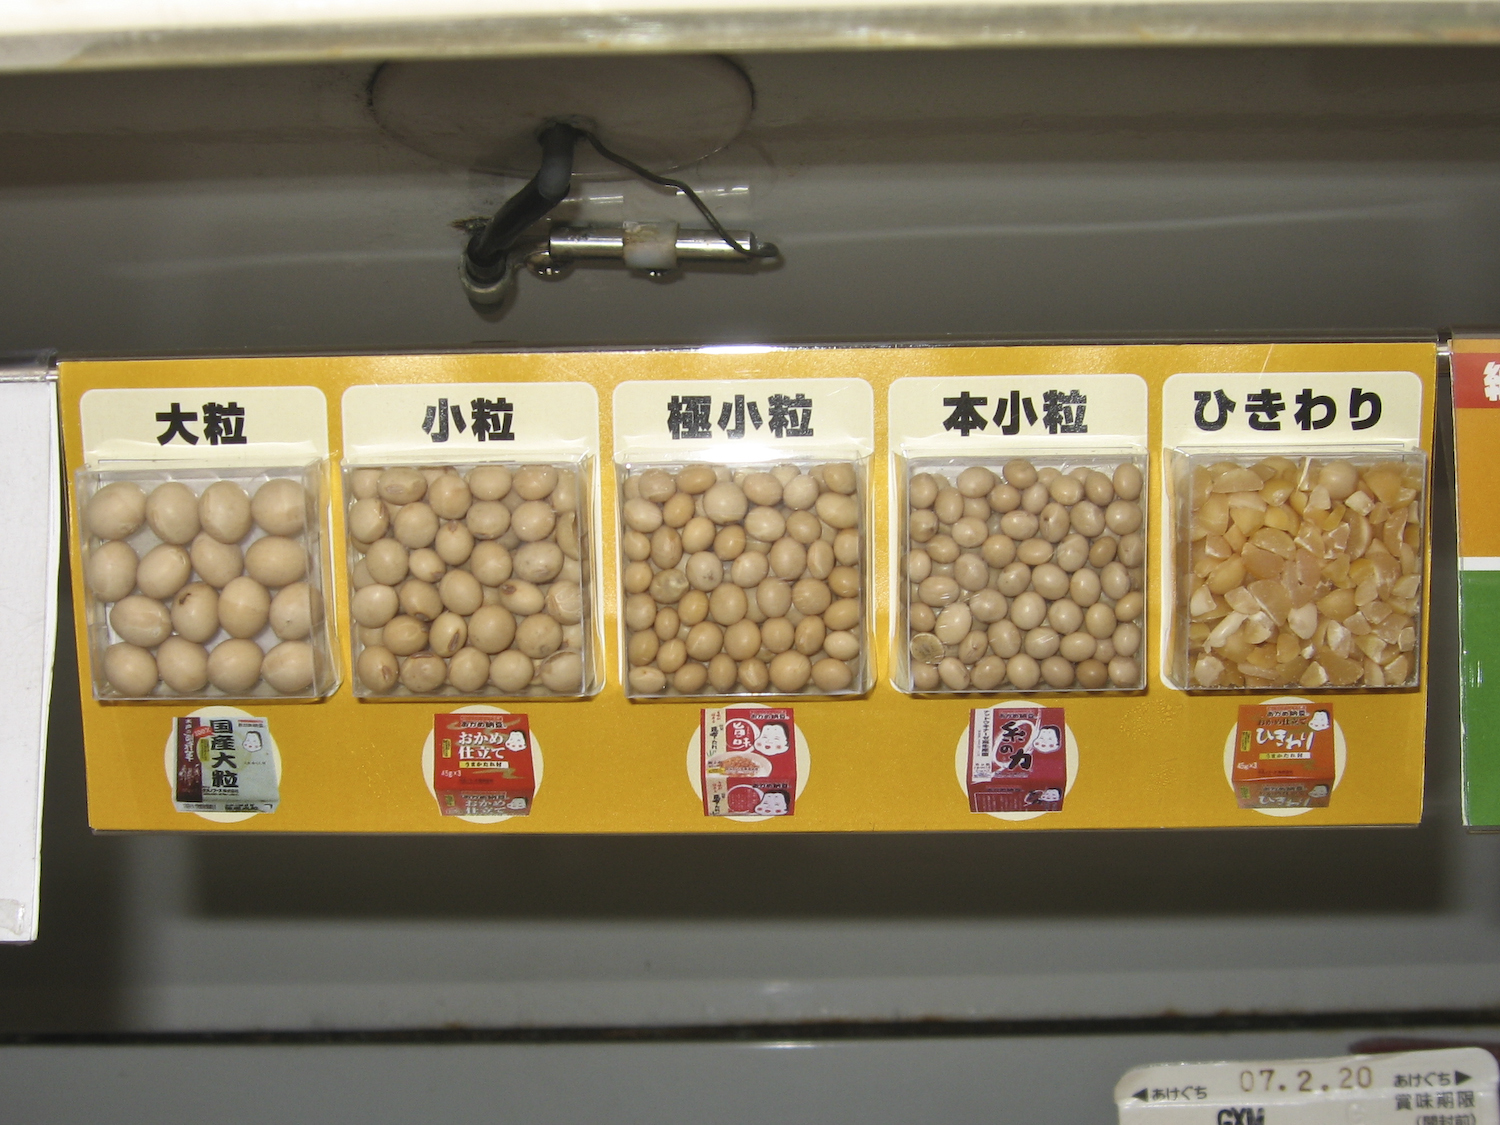 jason natto Nattokinase or natto is a wholesome and nutritious japanese food that is derived from soybeans in its native country,it is taken with rice to make natto, boiled soya beans are mixed and fermented with a bacterium referred to as bacillus natto.